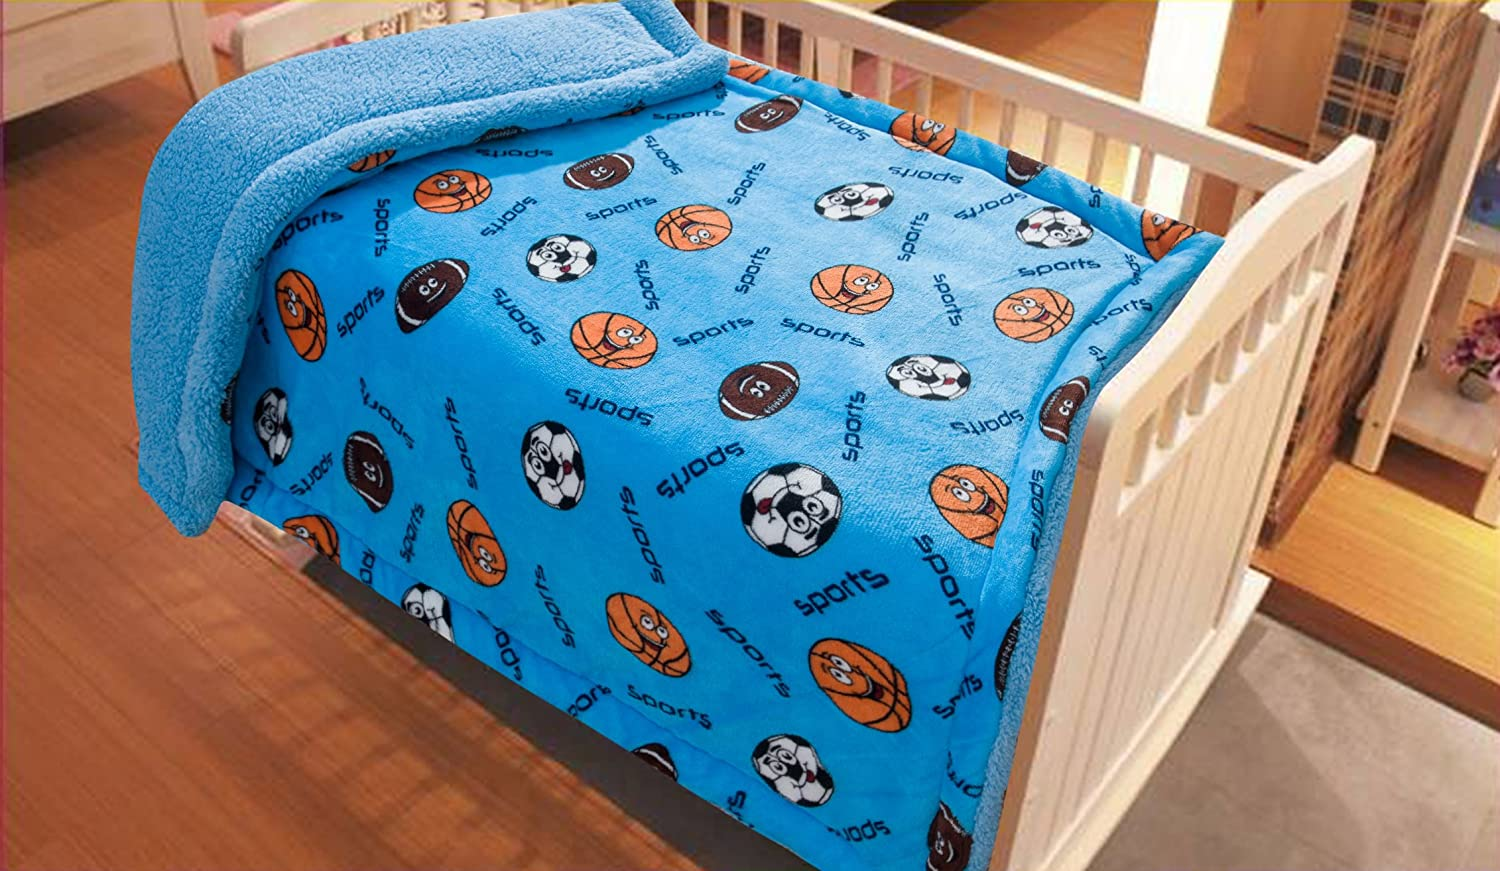 Elegant Home Kids Soft & Warm Sherpa Baby Toddler Boy Blanket Printed Borrego Stroller or Baby Crib or Toddler Bed Blanket Plush Throw 40X50 (Ball)